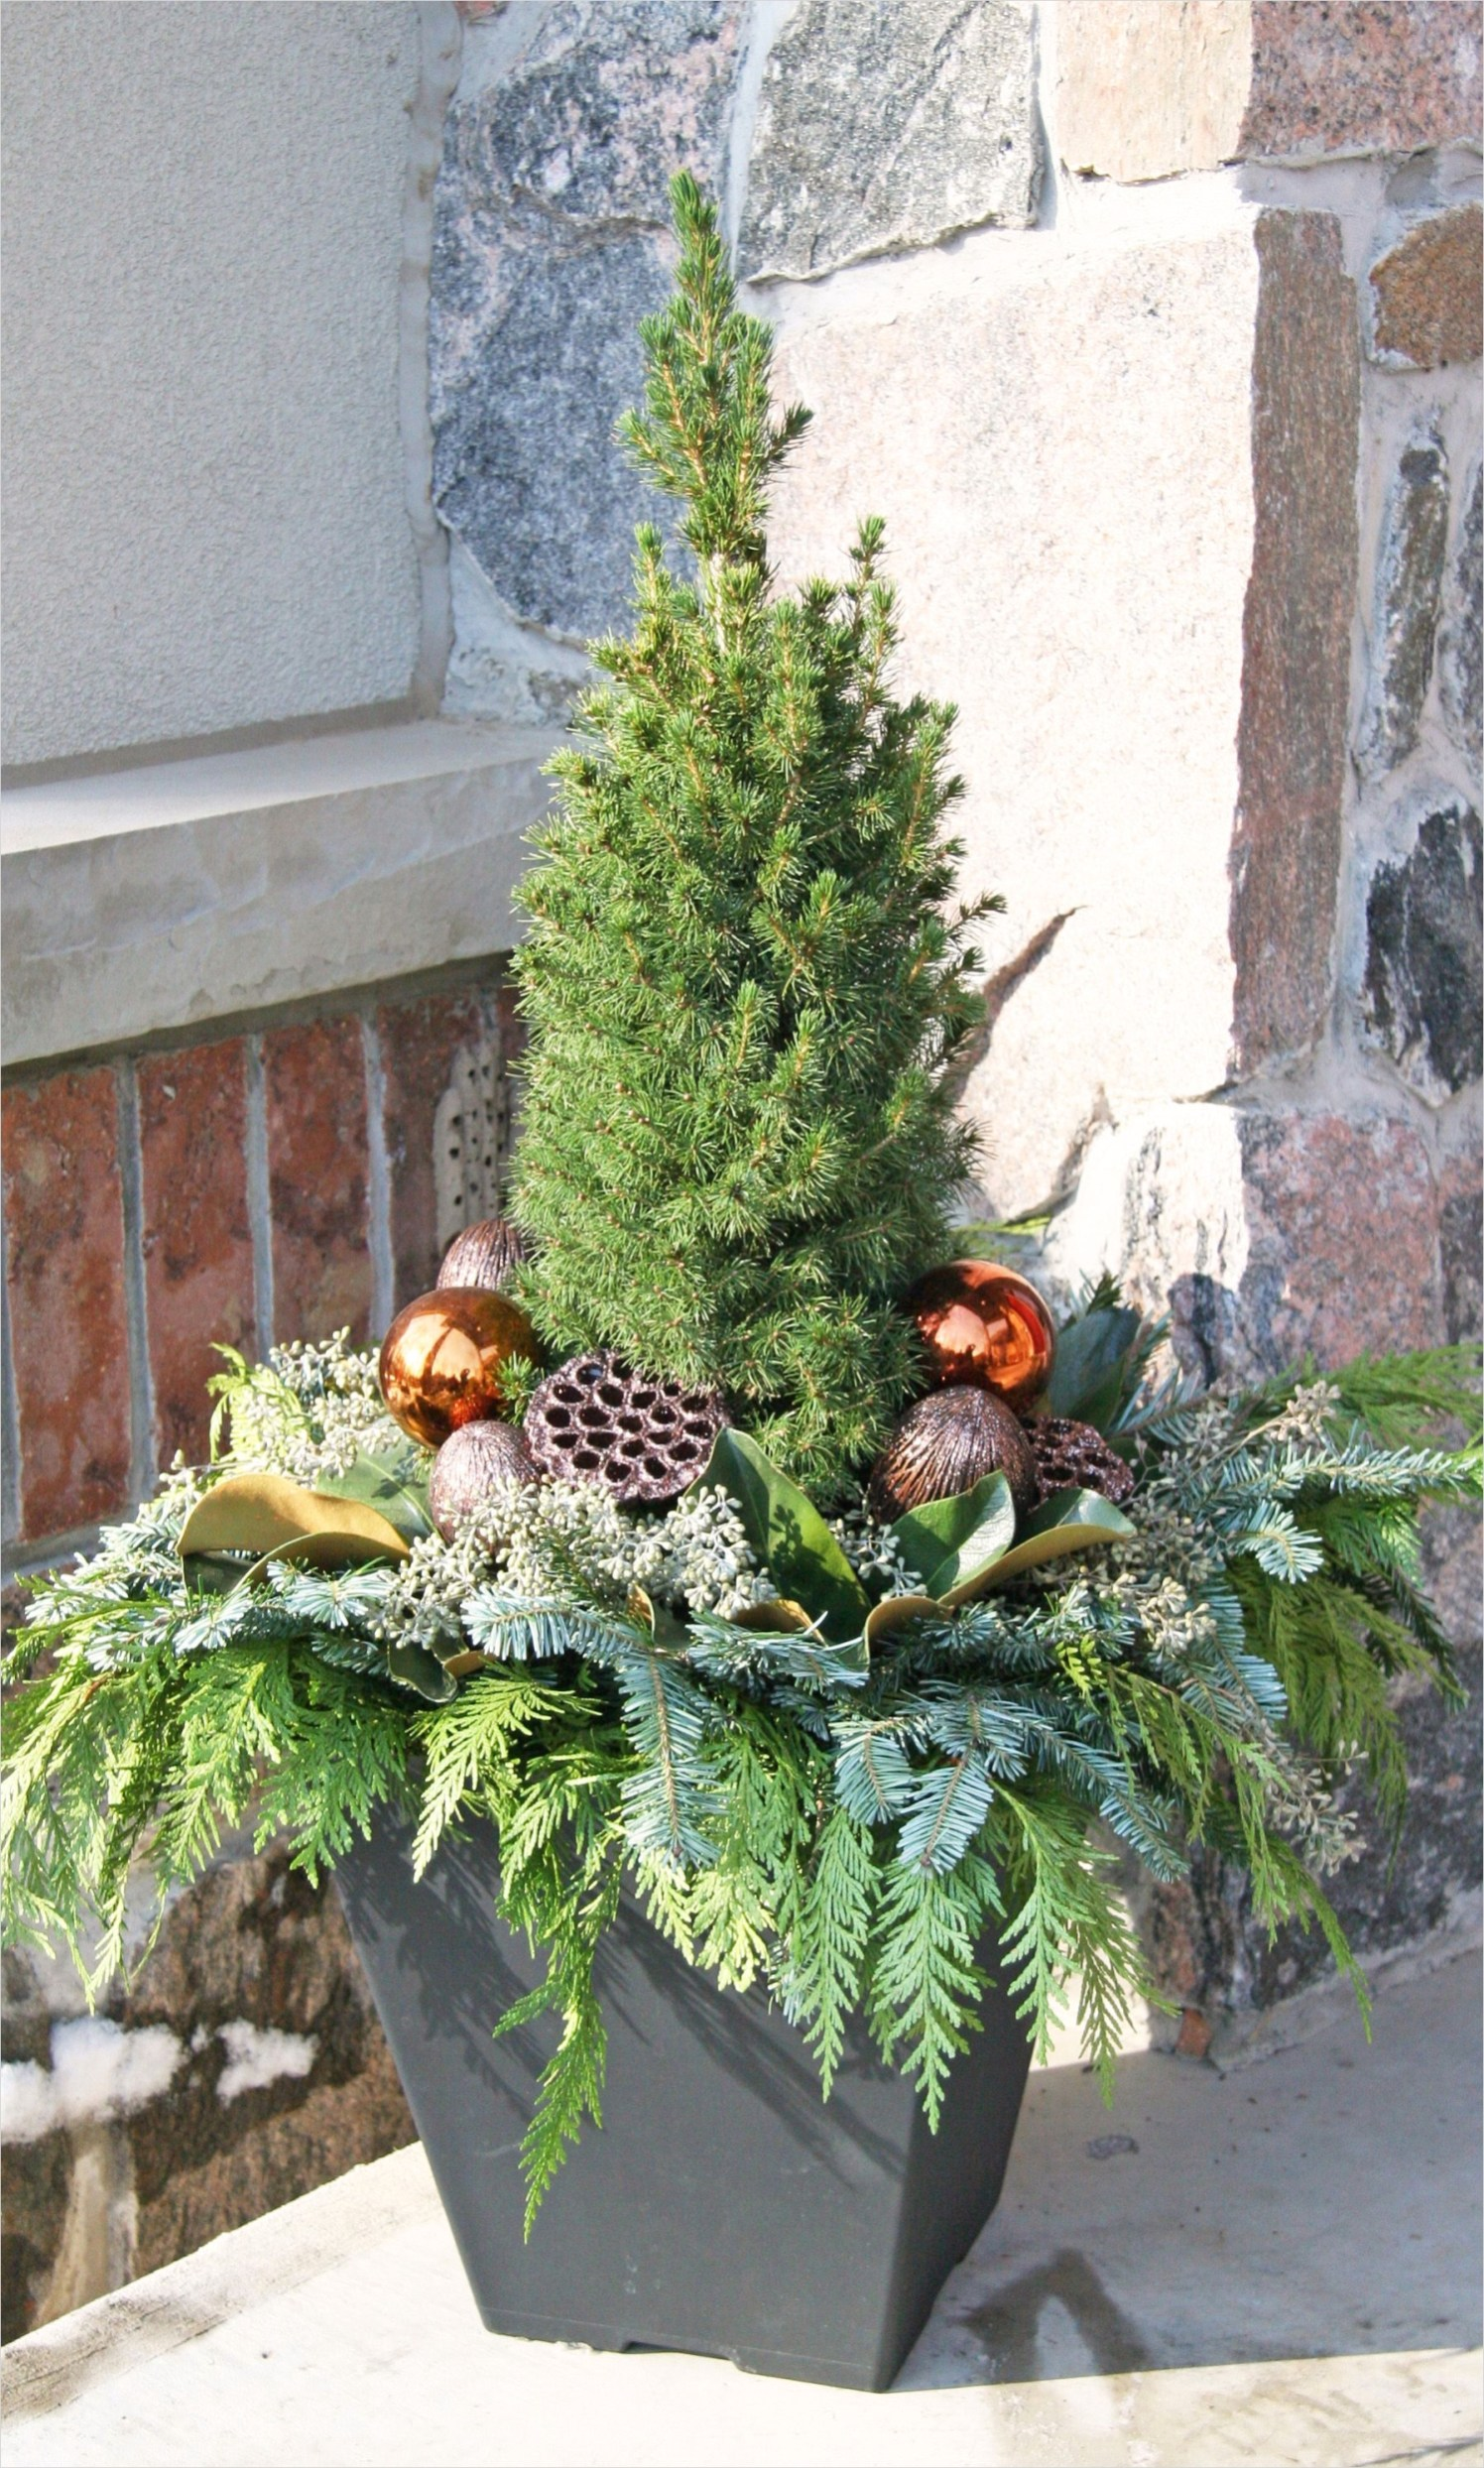 42 Beautiful Christmas Outdoor Pot Decorations Ideas 95 Outdoor Christmas Planter Outdoor Christmas Planters Pinterest 9